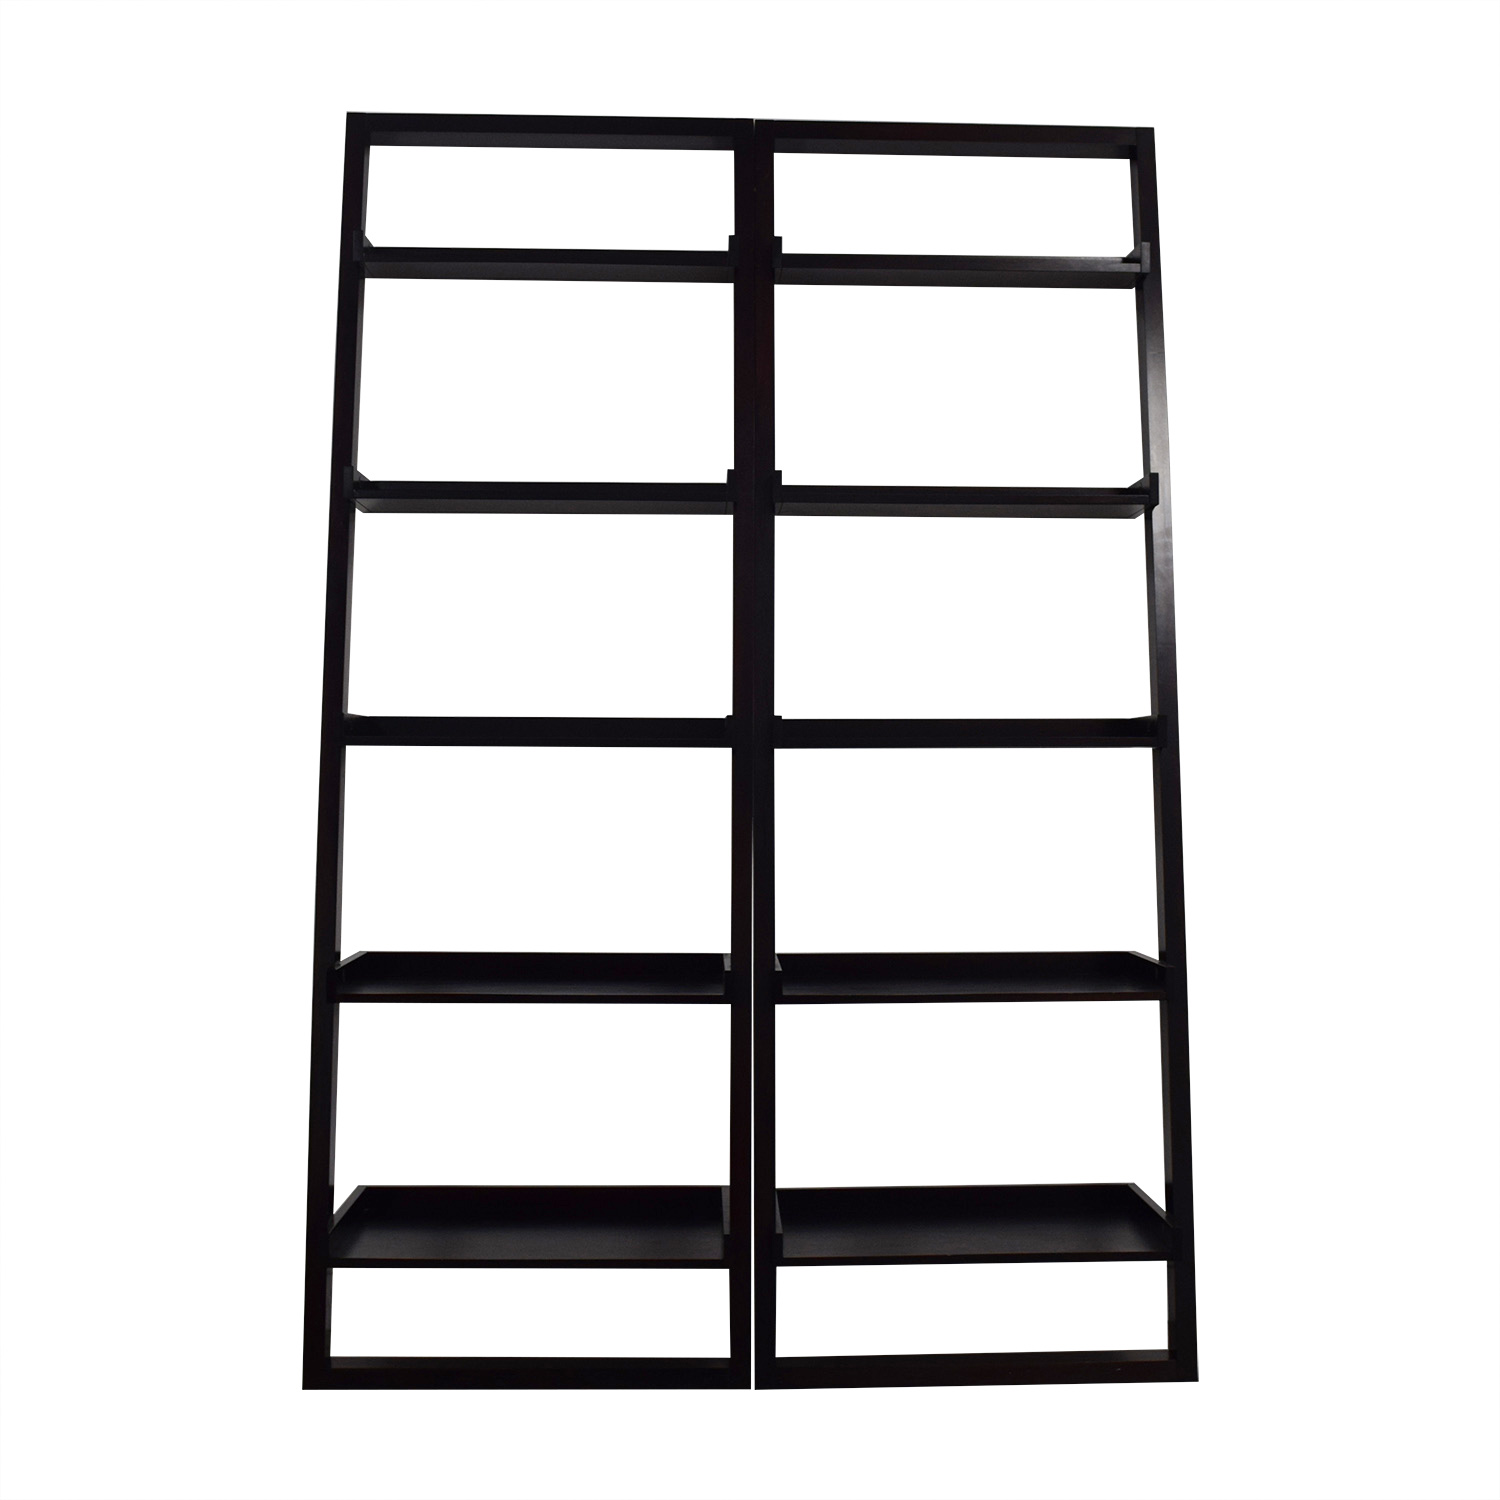 Crate & Barrel Crate & Barrel Leaning Bookshelves second hand